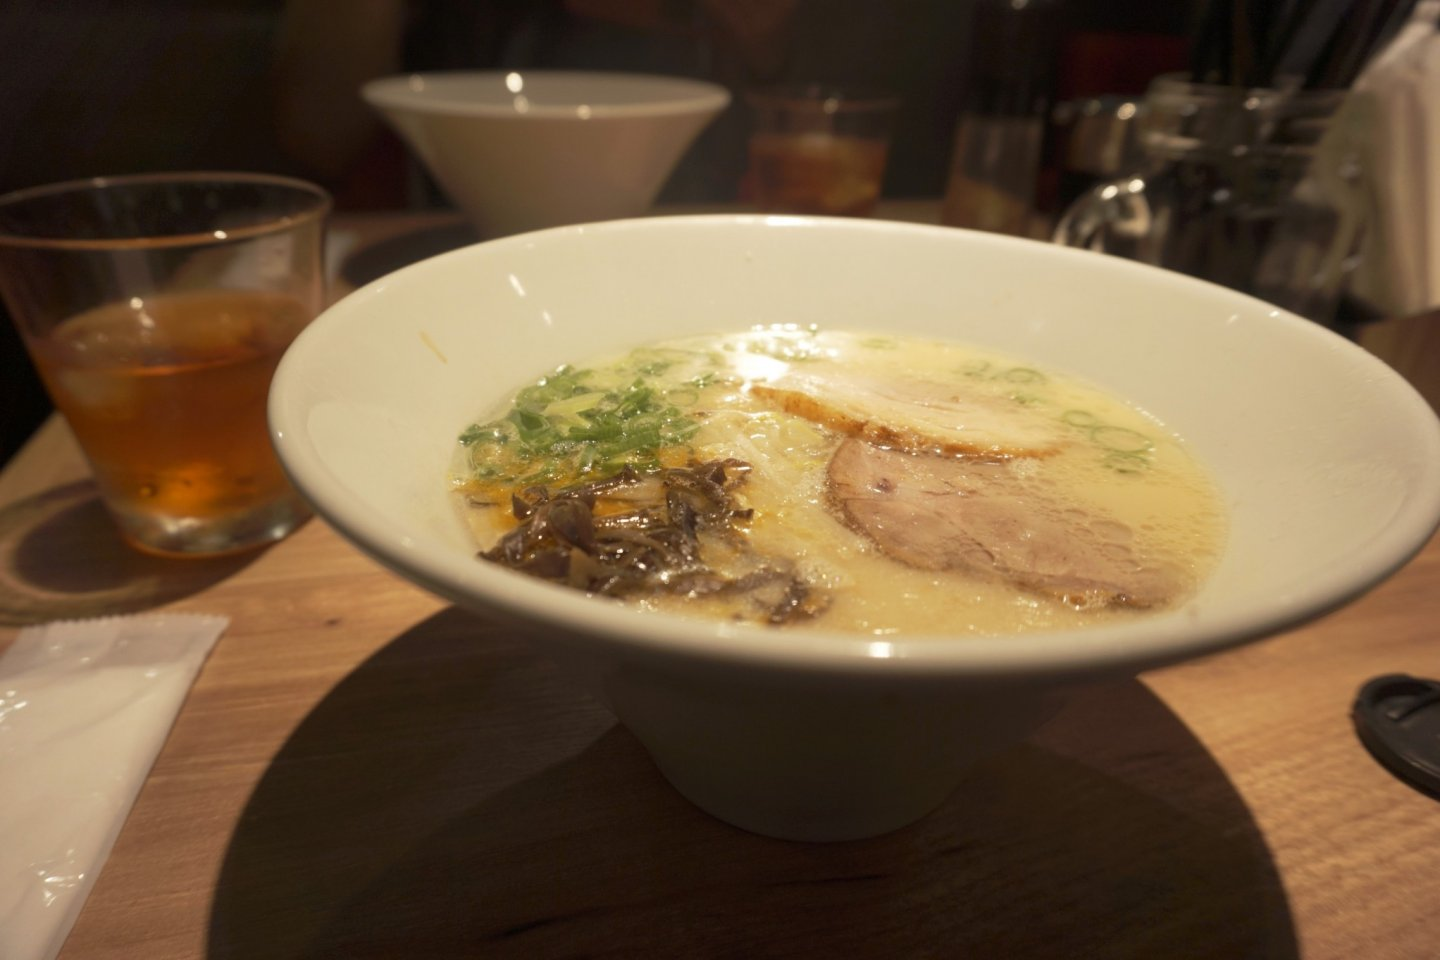 The full size Ippudo Ramen